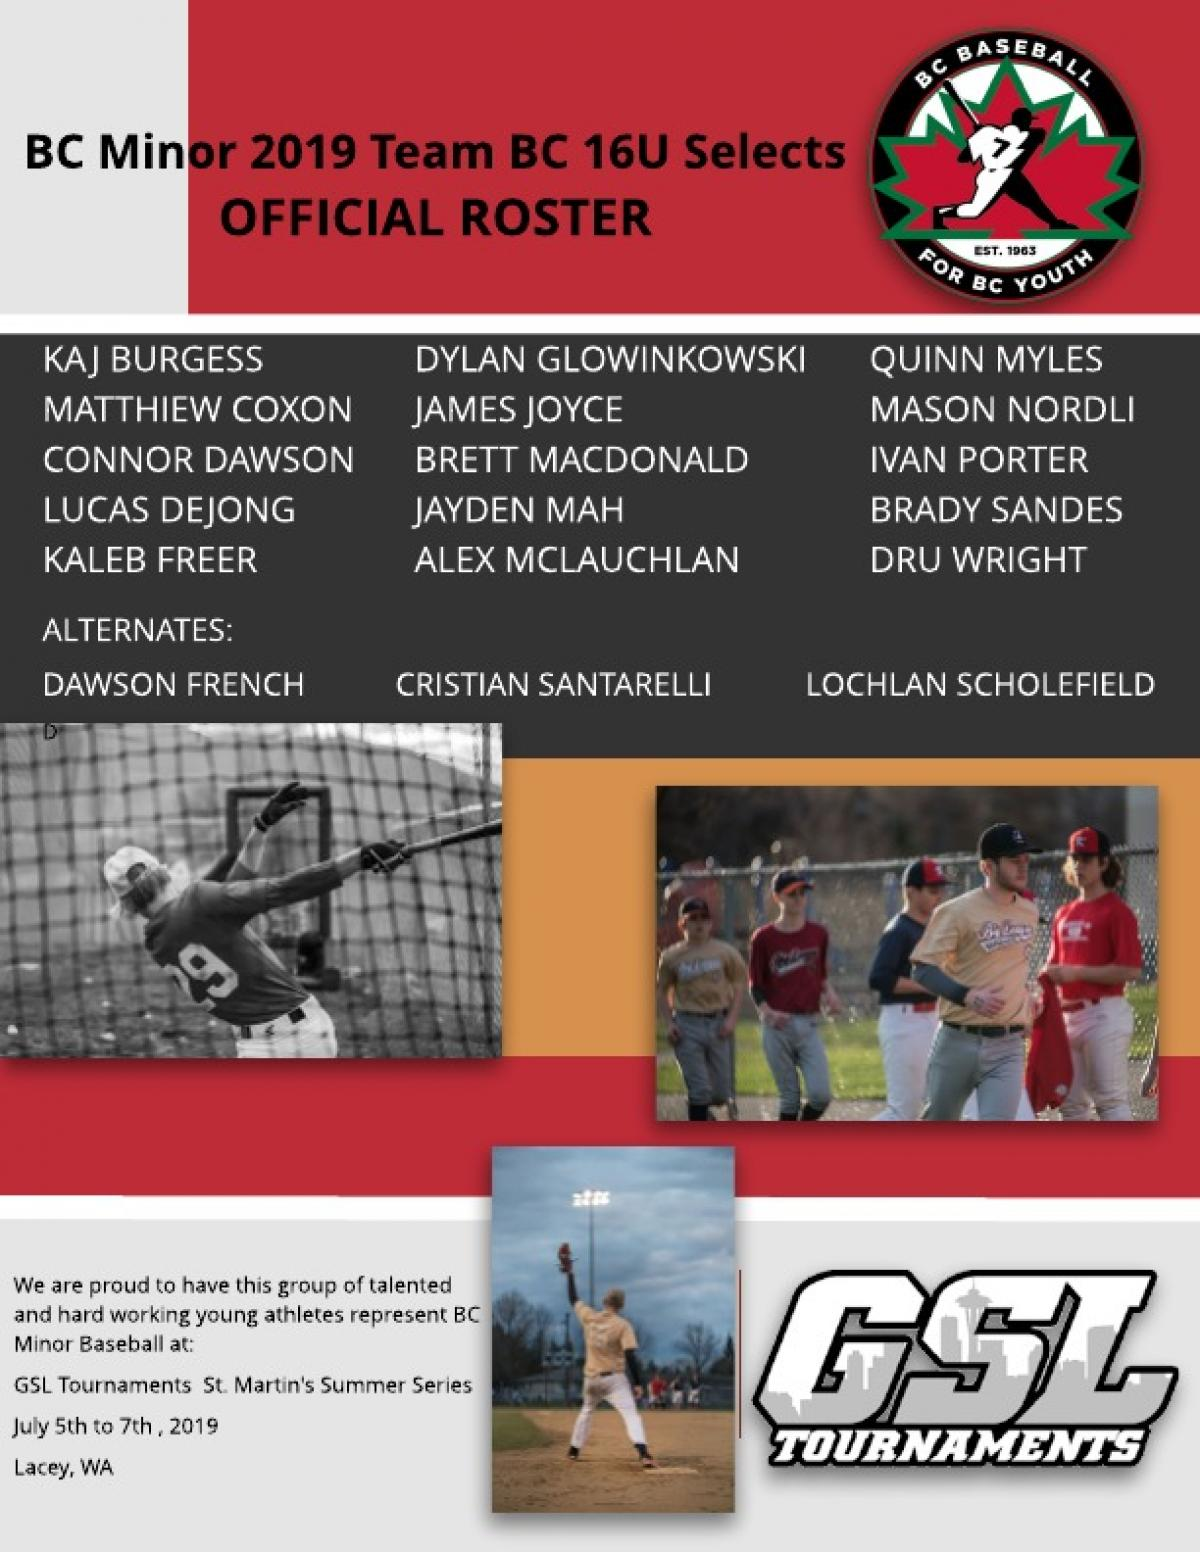 2019 Team BC U16 Roster Released